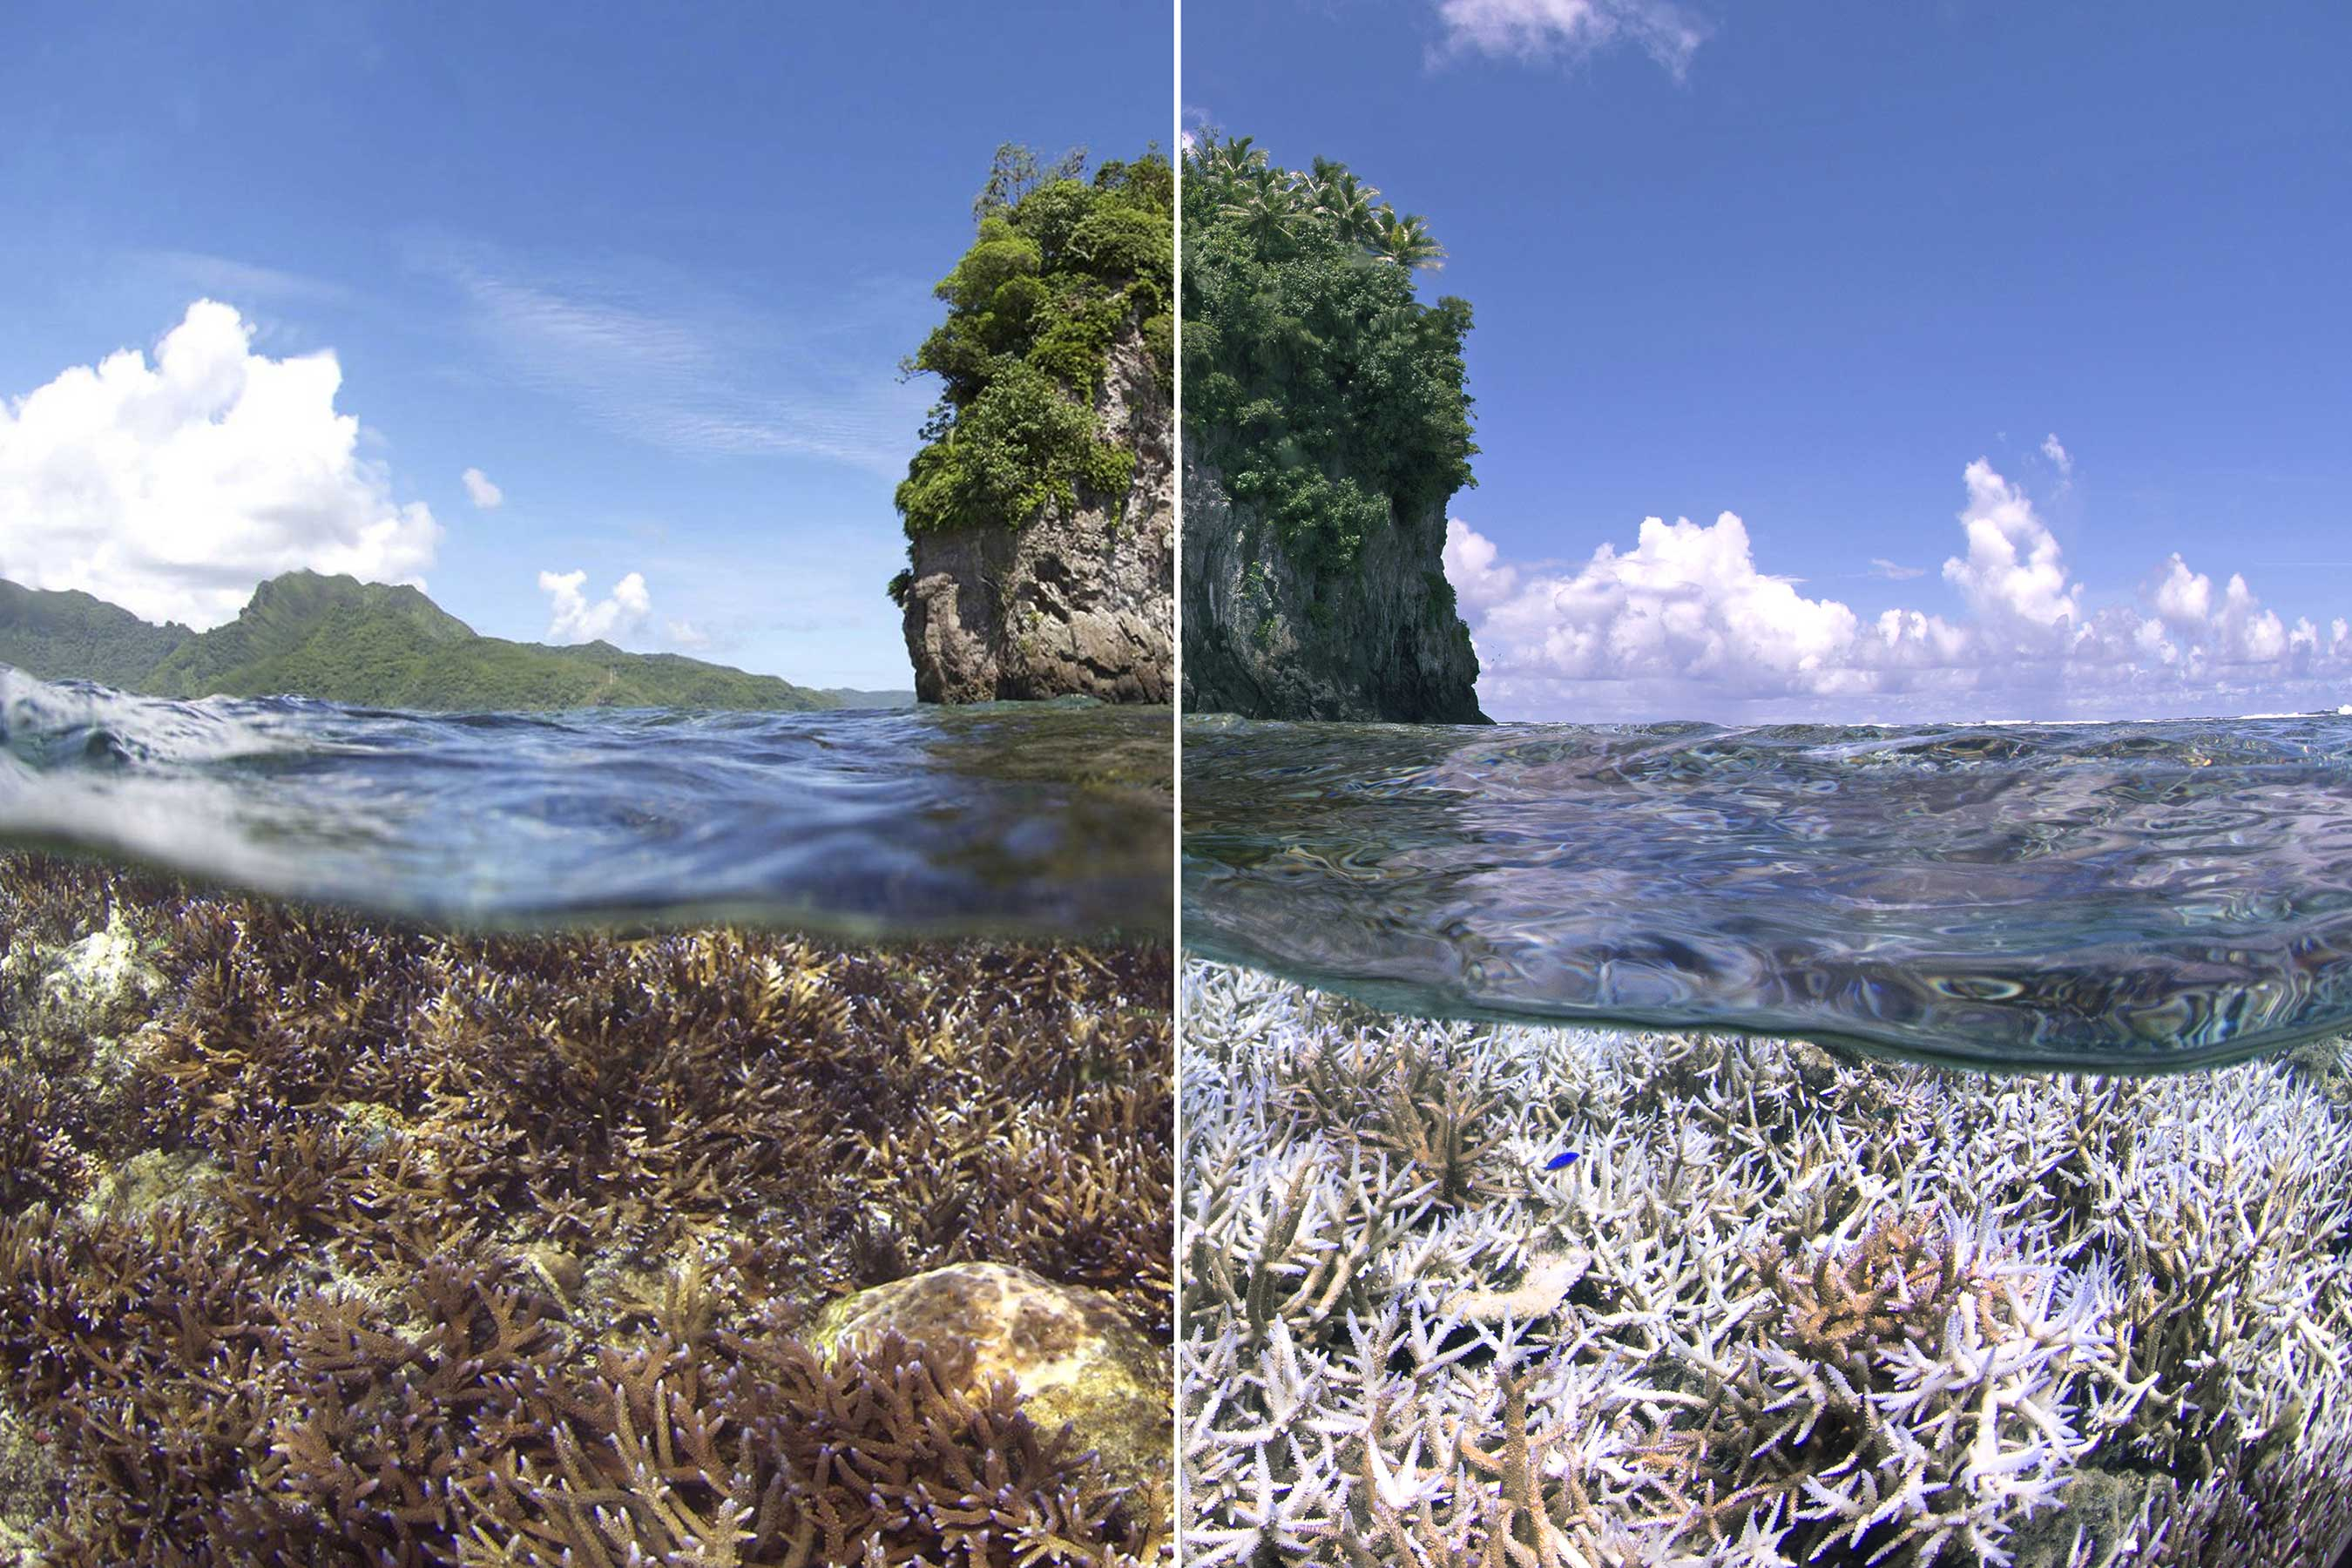 A before and after image of the coral bleaching in American Samoa. The first image was taken in December 2014. The second image was taken in February 2015.